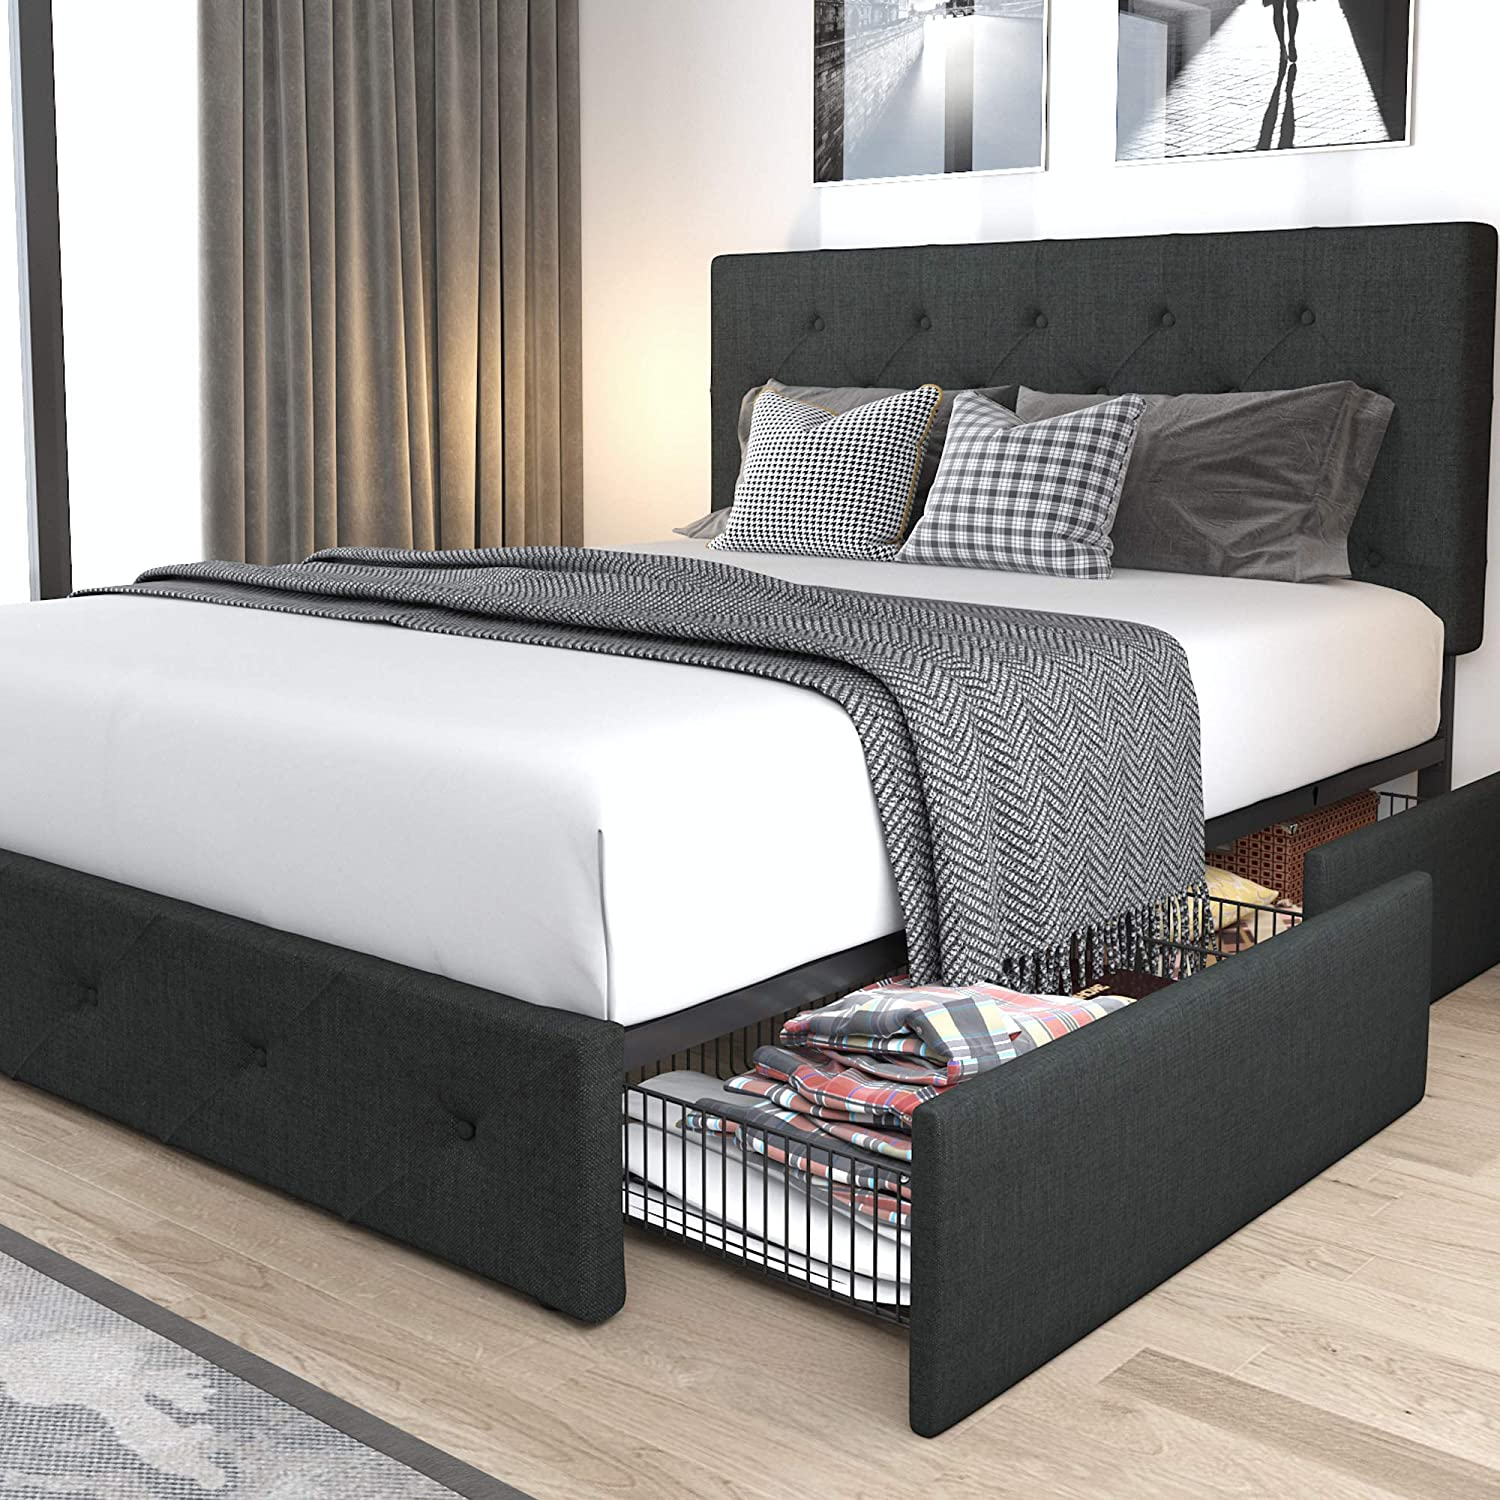 Allewie Queen Platform Bed Frame with 4 Drawers Storage and Headboard, Diamond Stitched Button Tufted Upholstered Mattress Foundation with Wood Slat Support, No Box Spring Needed, Dark Grey